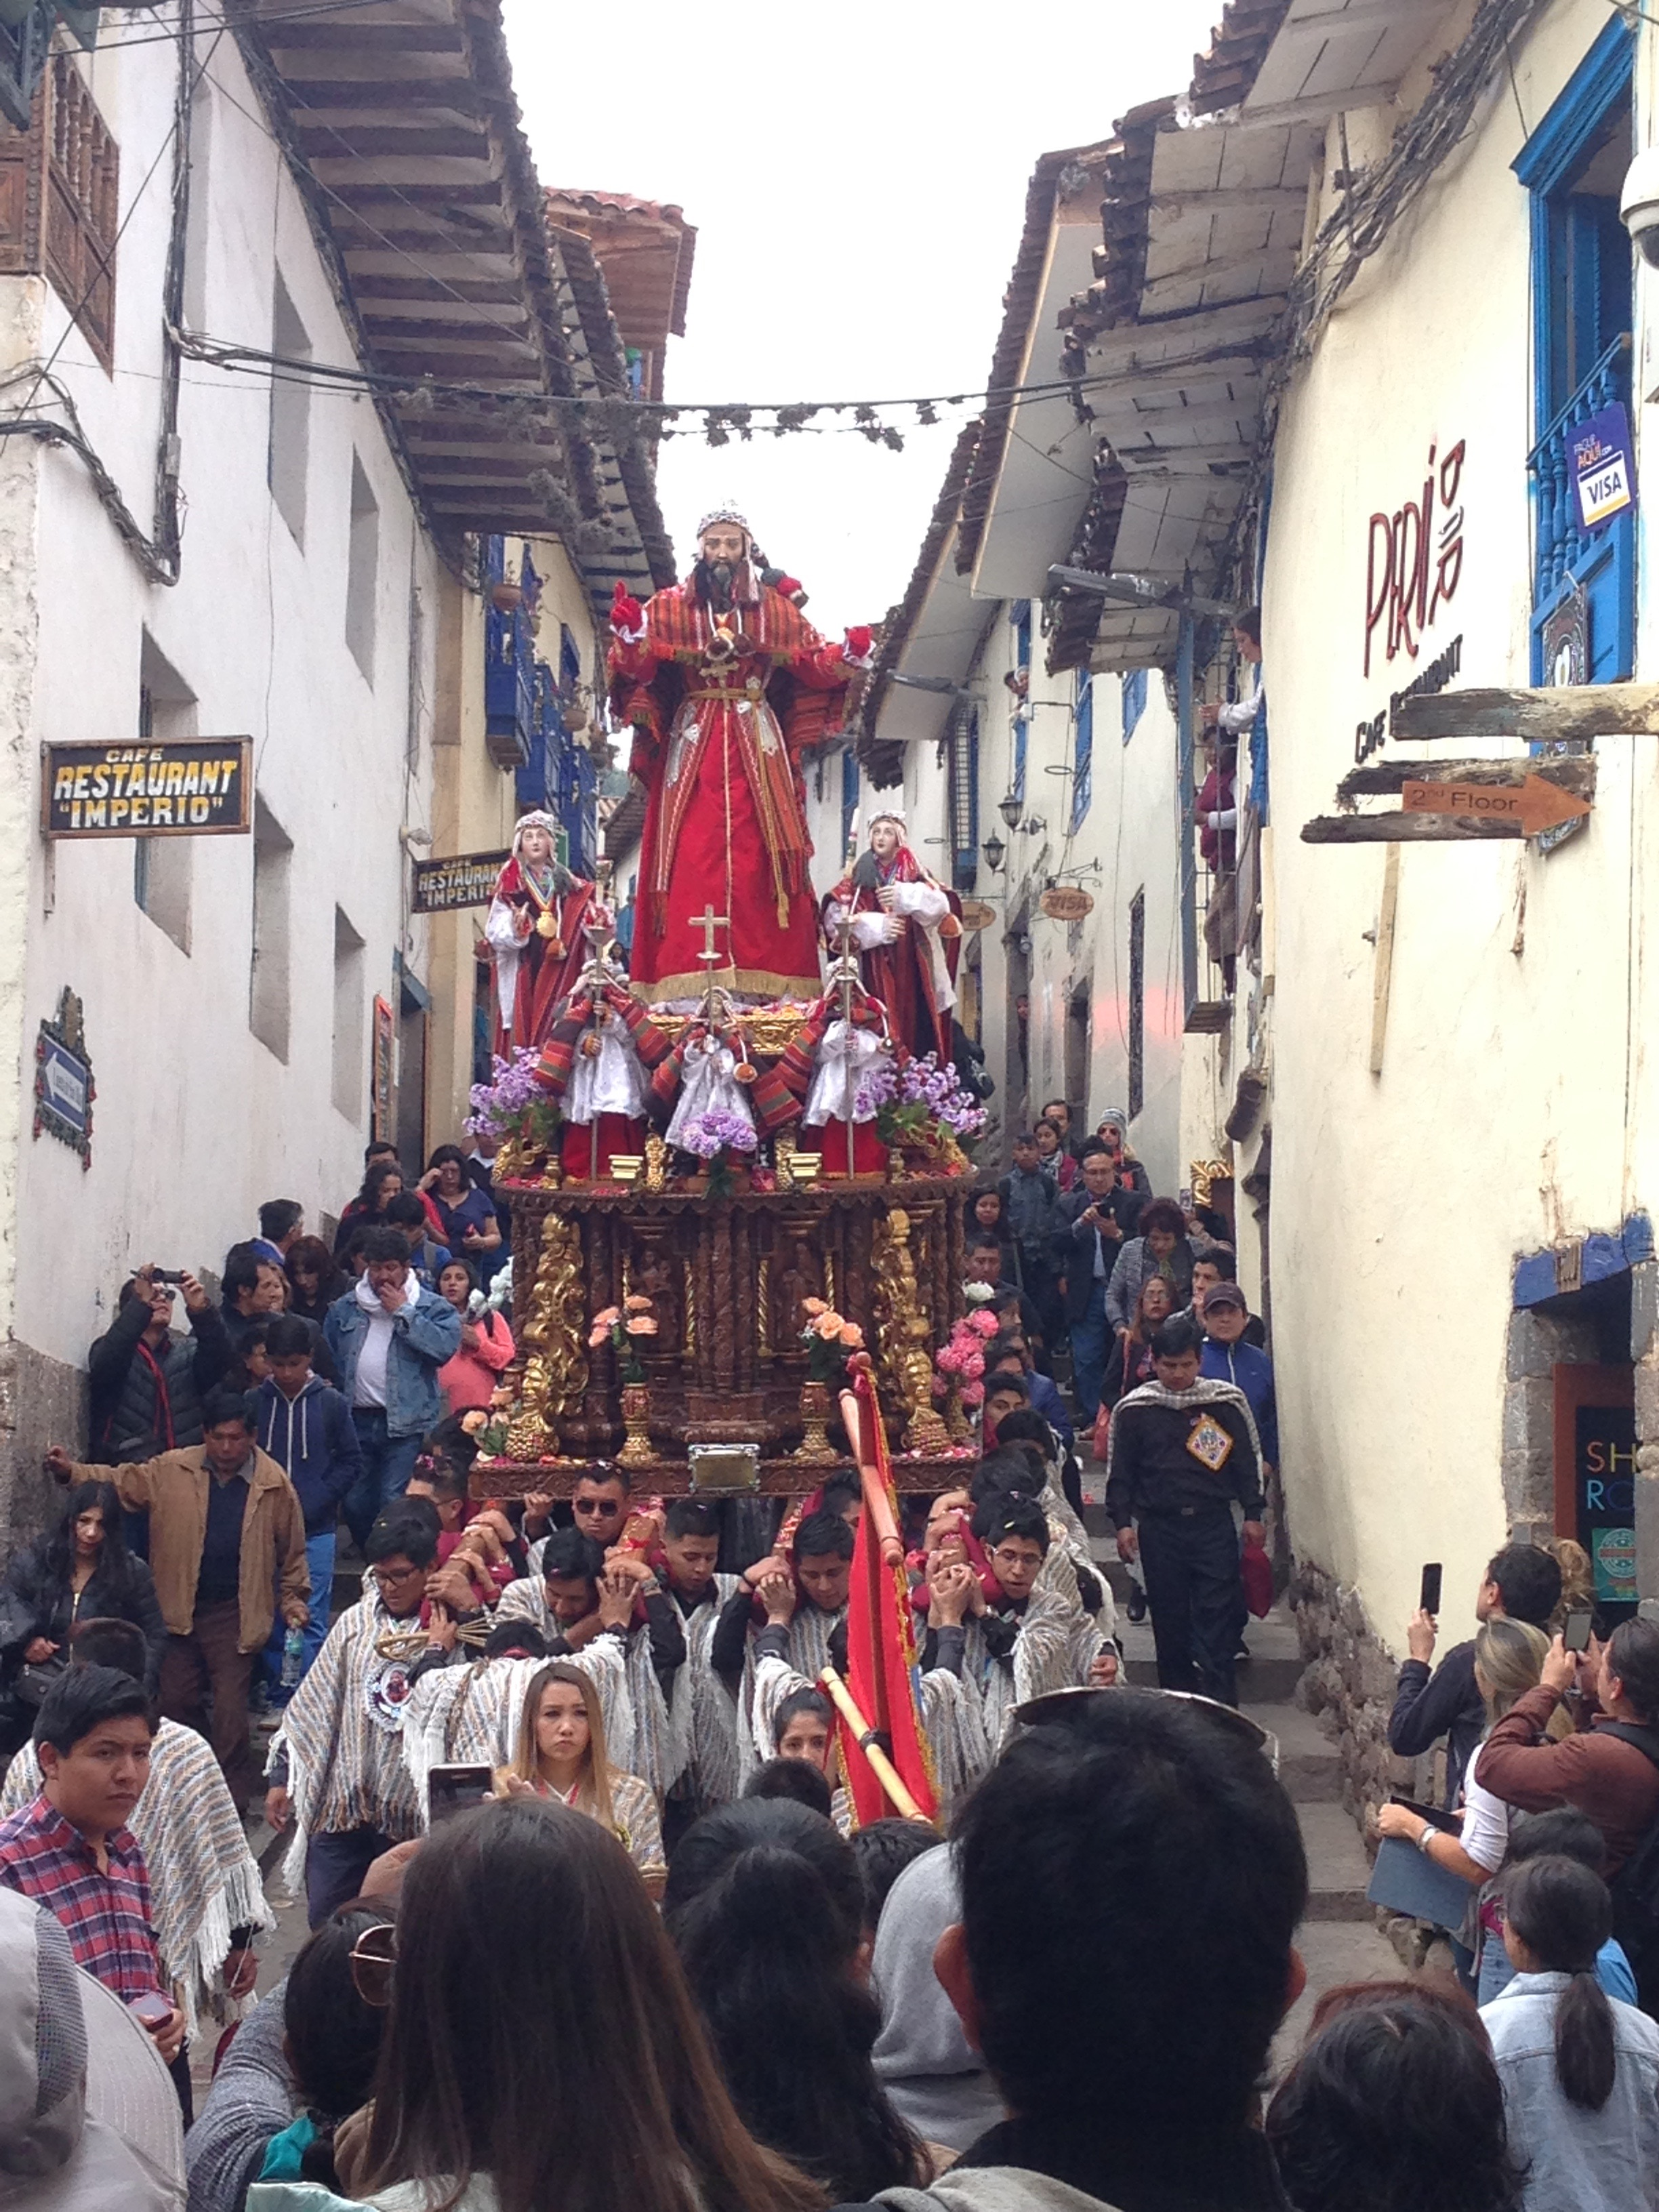 A Saint on a pedestal in the streets of Cuzco during the festival of Corpus Christi.